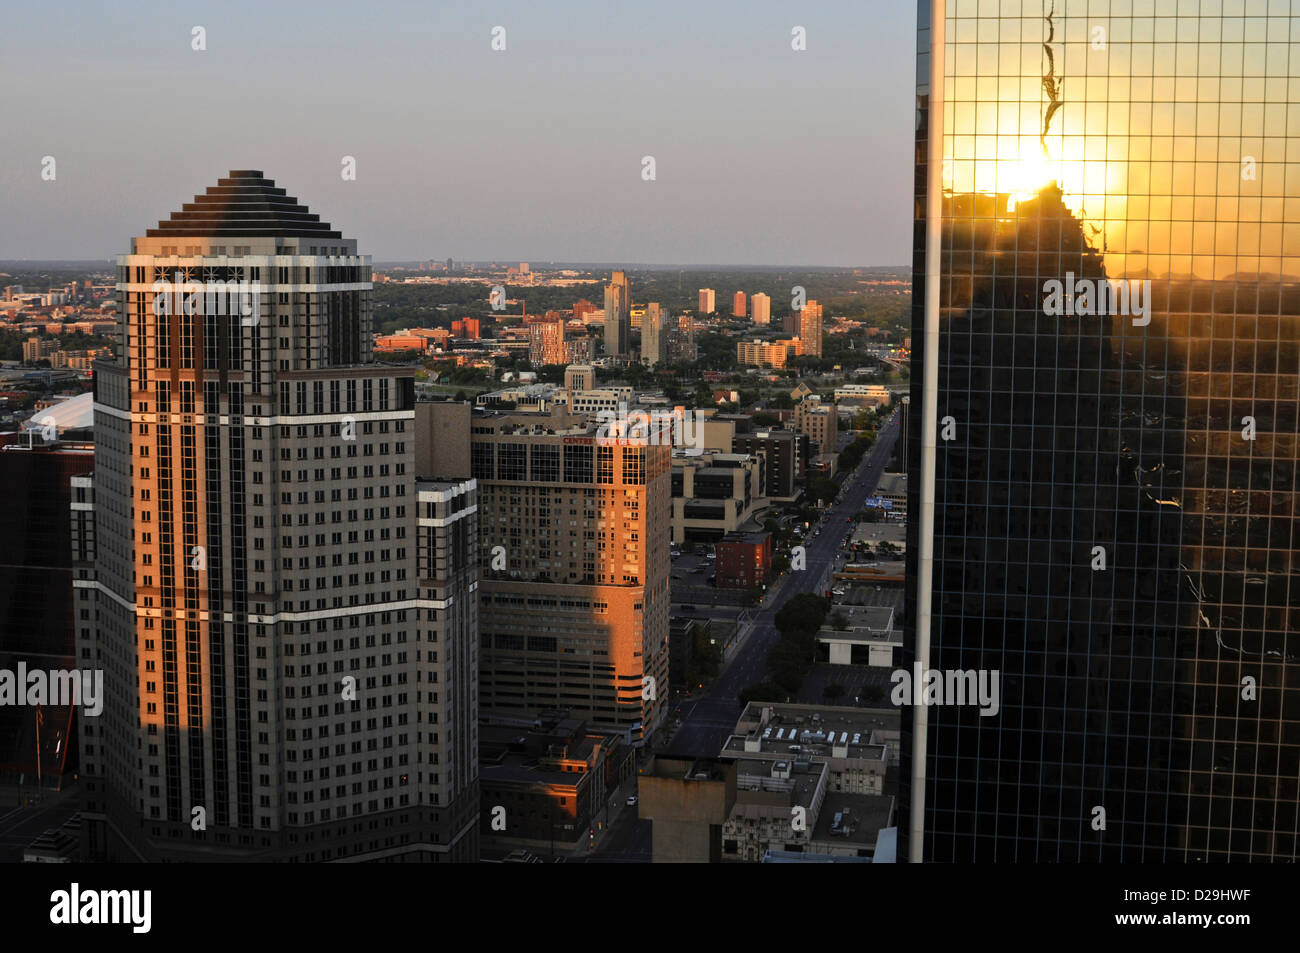 Minneapolis, Mn skyline at sunset - Stock Image